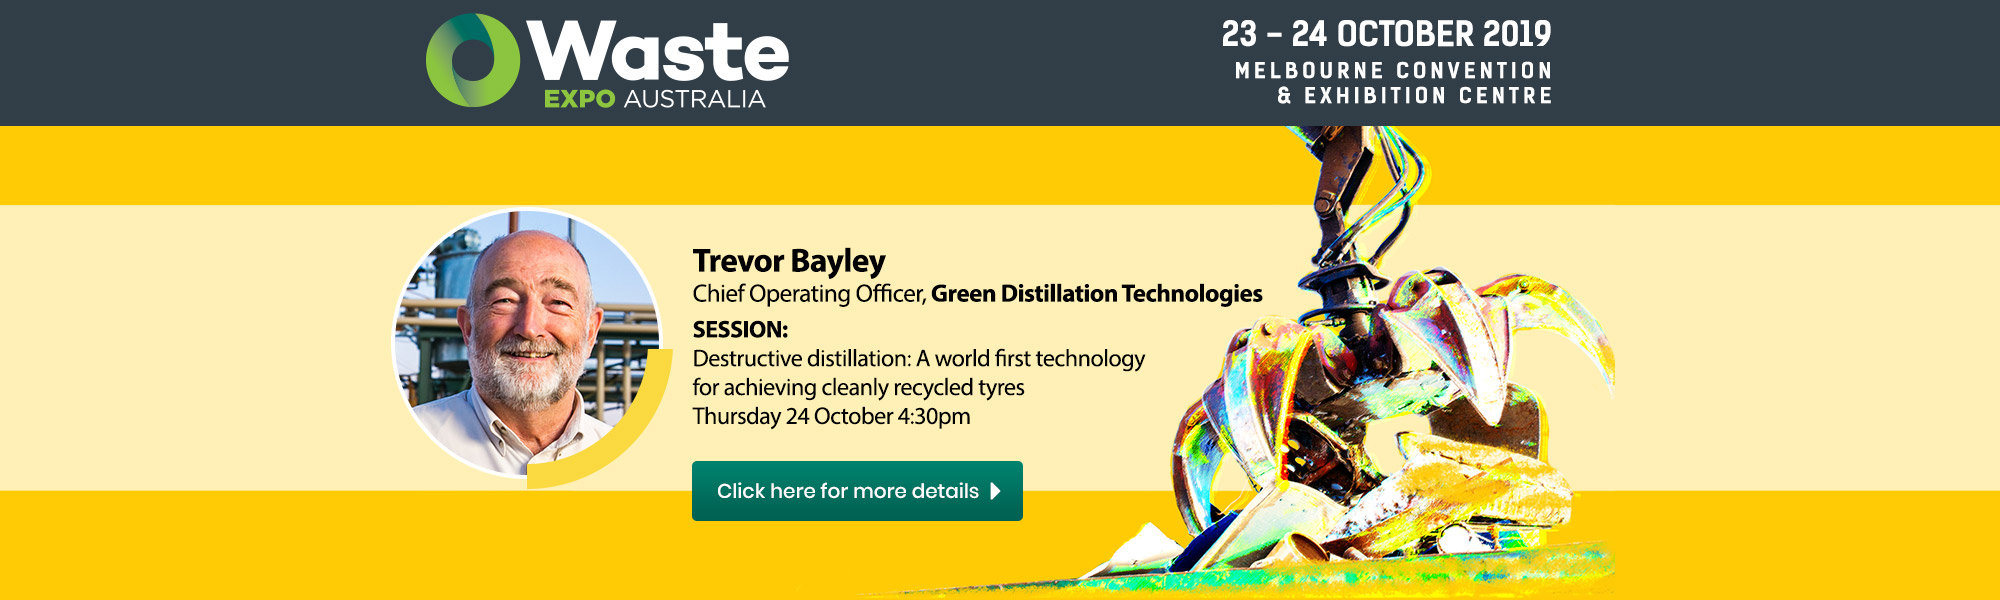 gdtc waste expo melbourne 2019